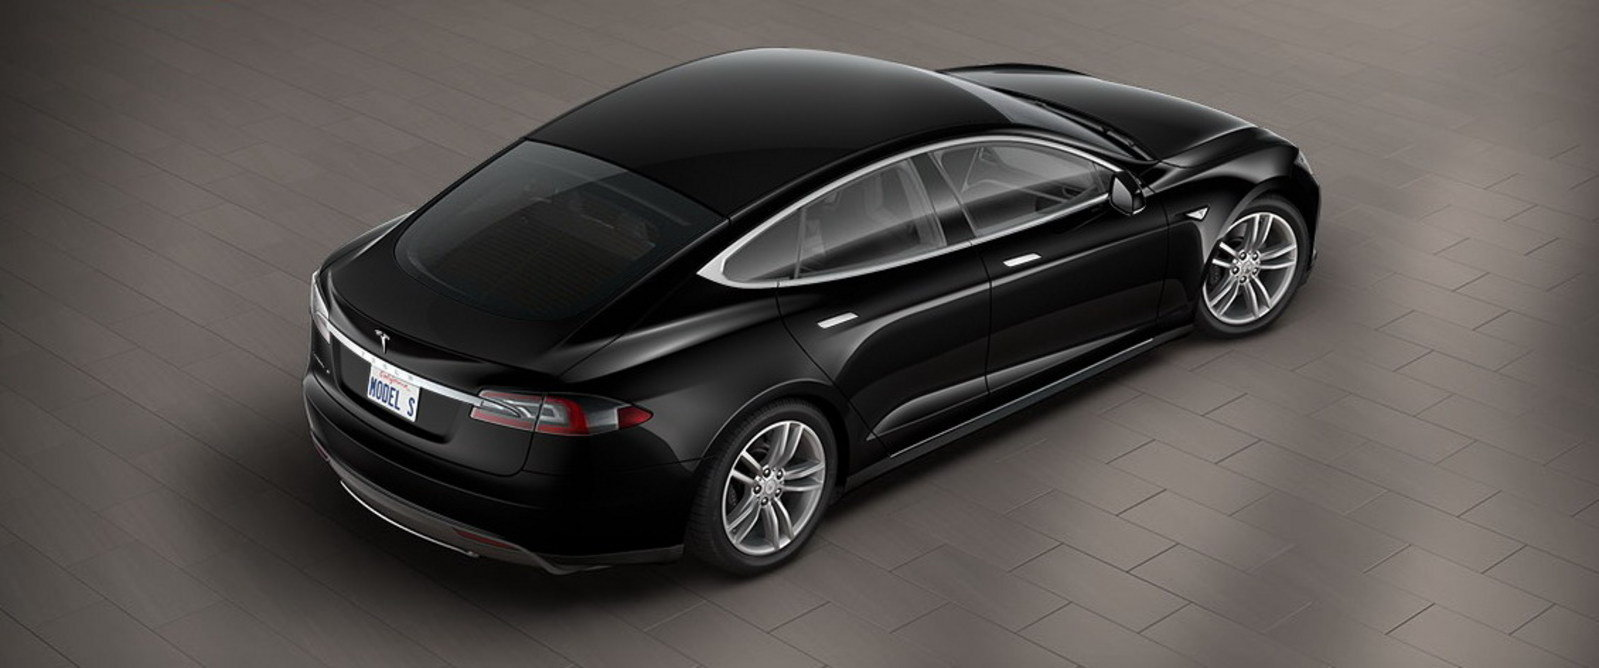 tesla commences testing of autopilot and firmware 7 0 news top speed. Black Bedroom Furniture Sets. Home Design Ideas